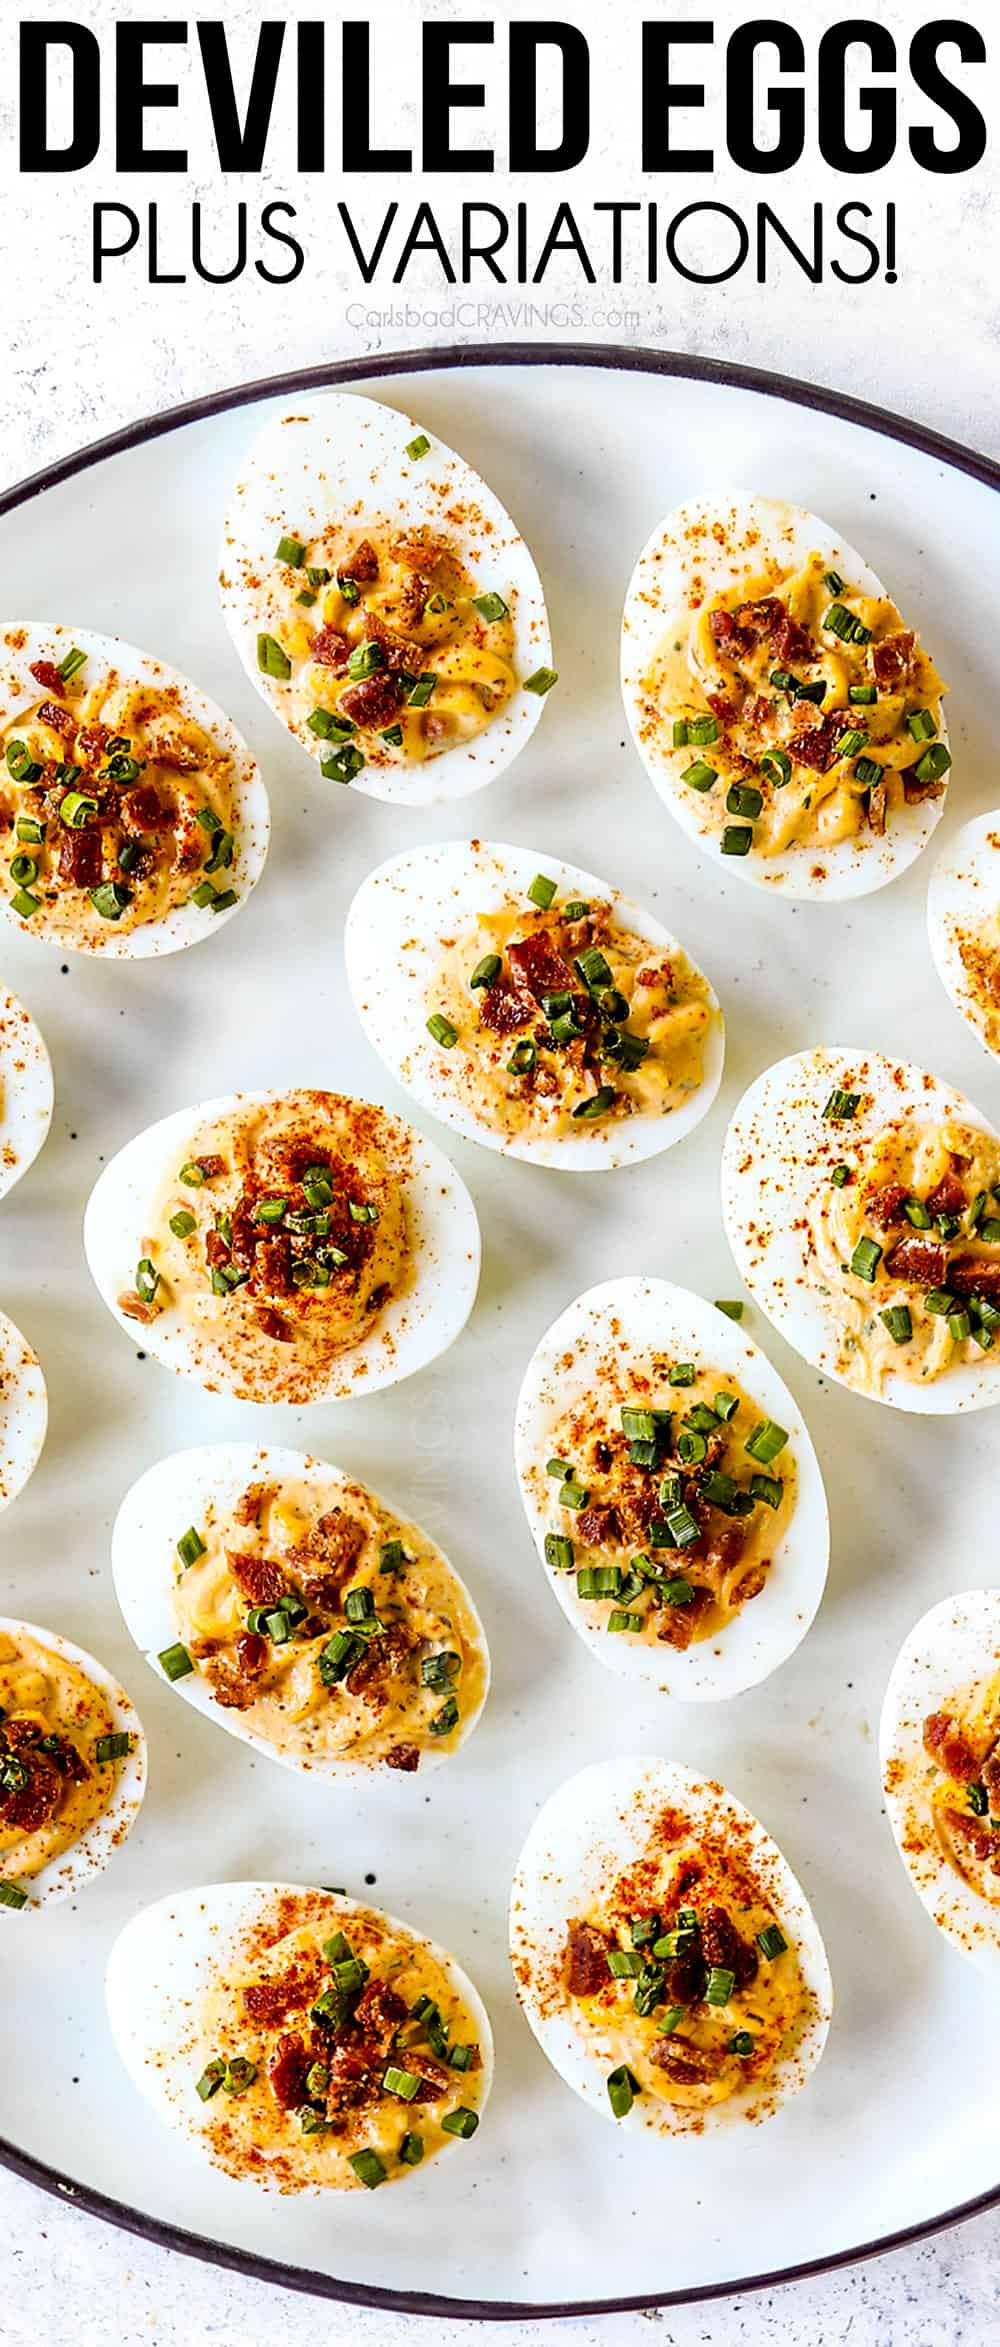 top view of deviled egg recipe with deviled eggs on a white platter